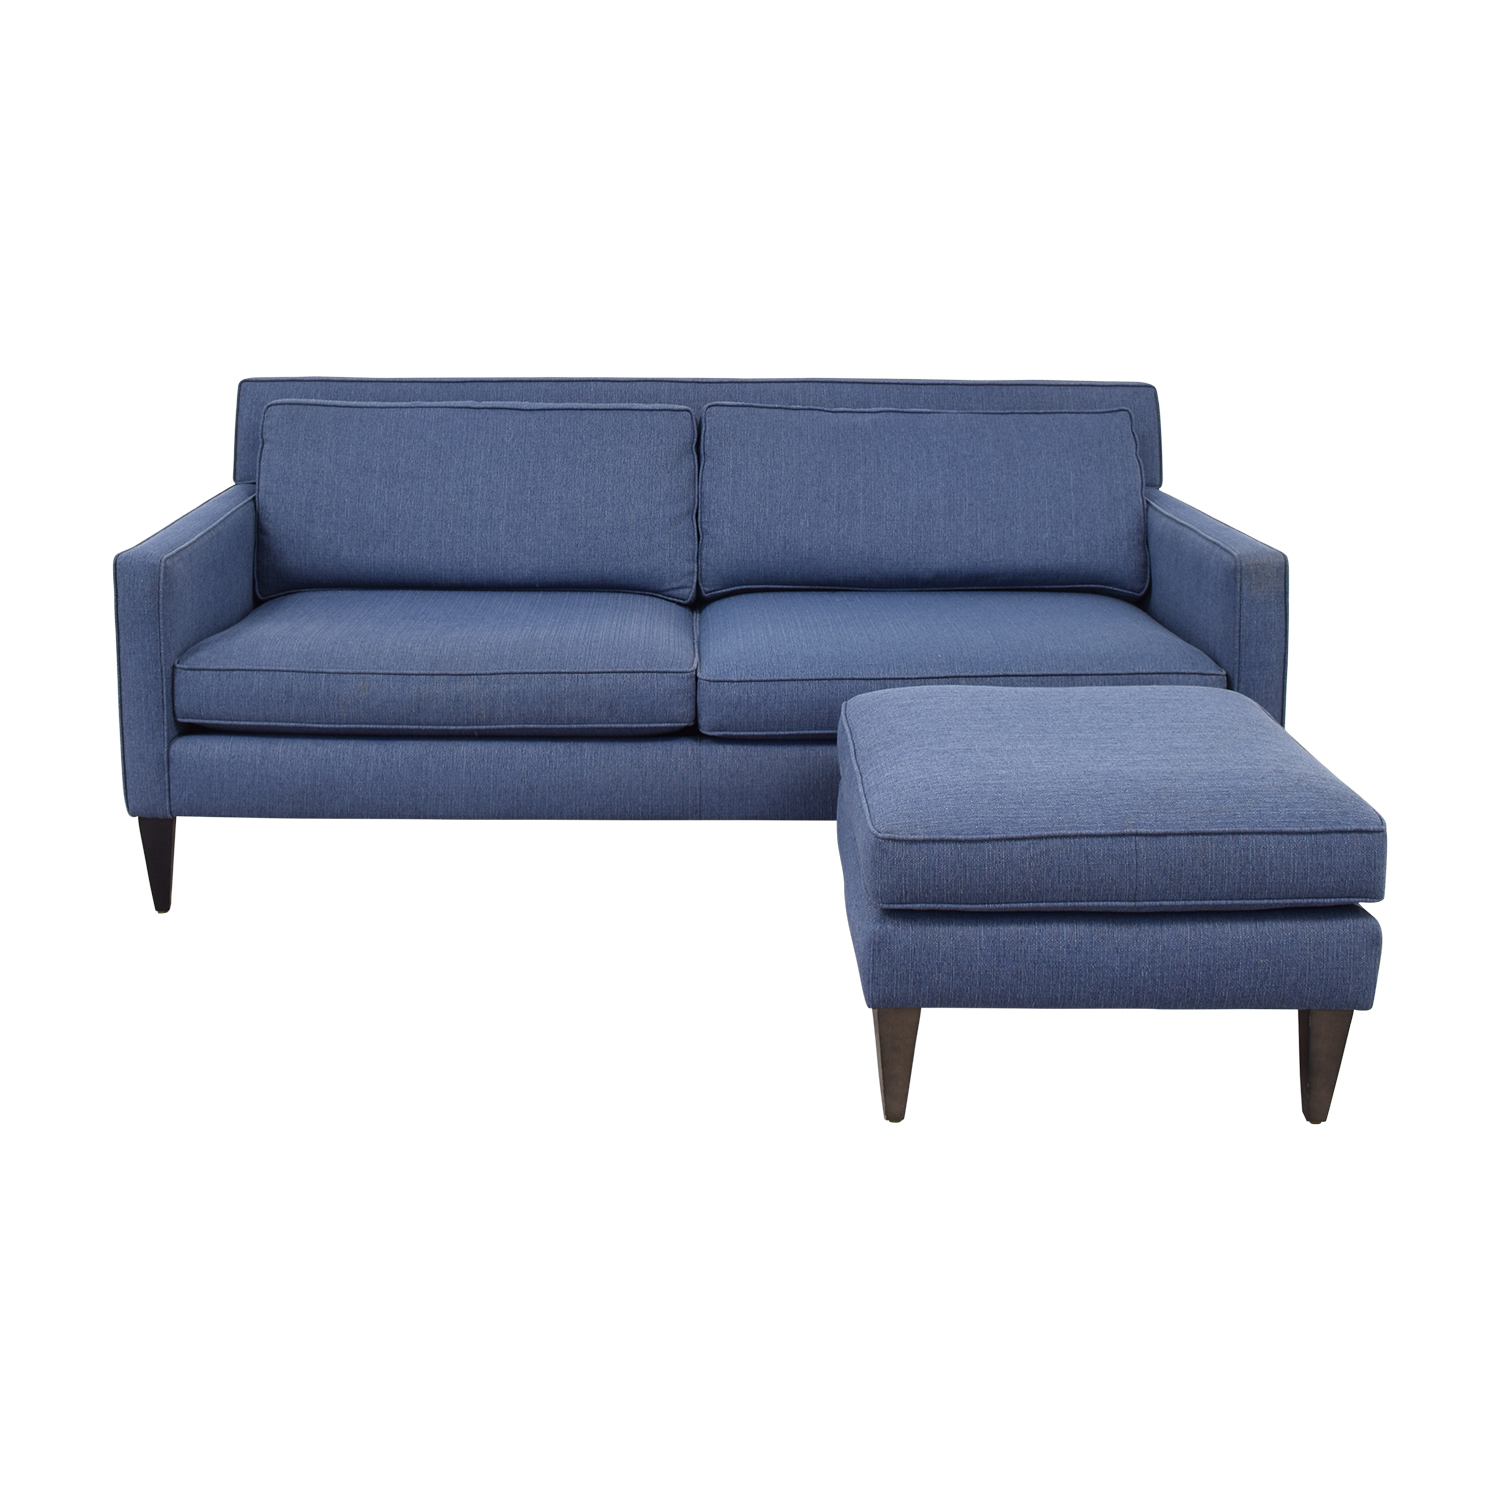 Crate & Barrel Crate & Barrel Rochelle Blue Two-Cushion Sofa and Ottoman nj